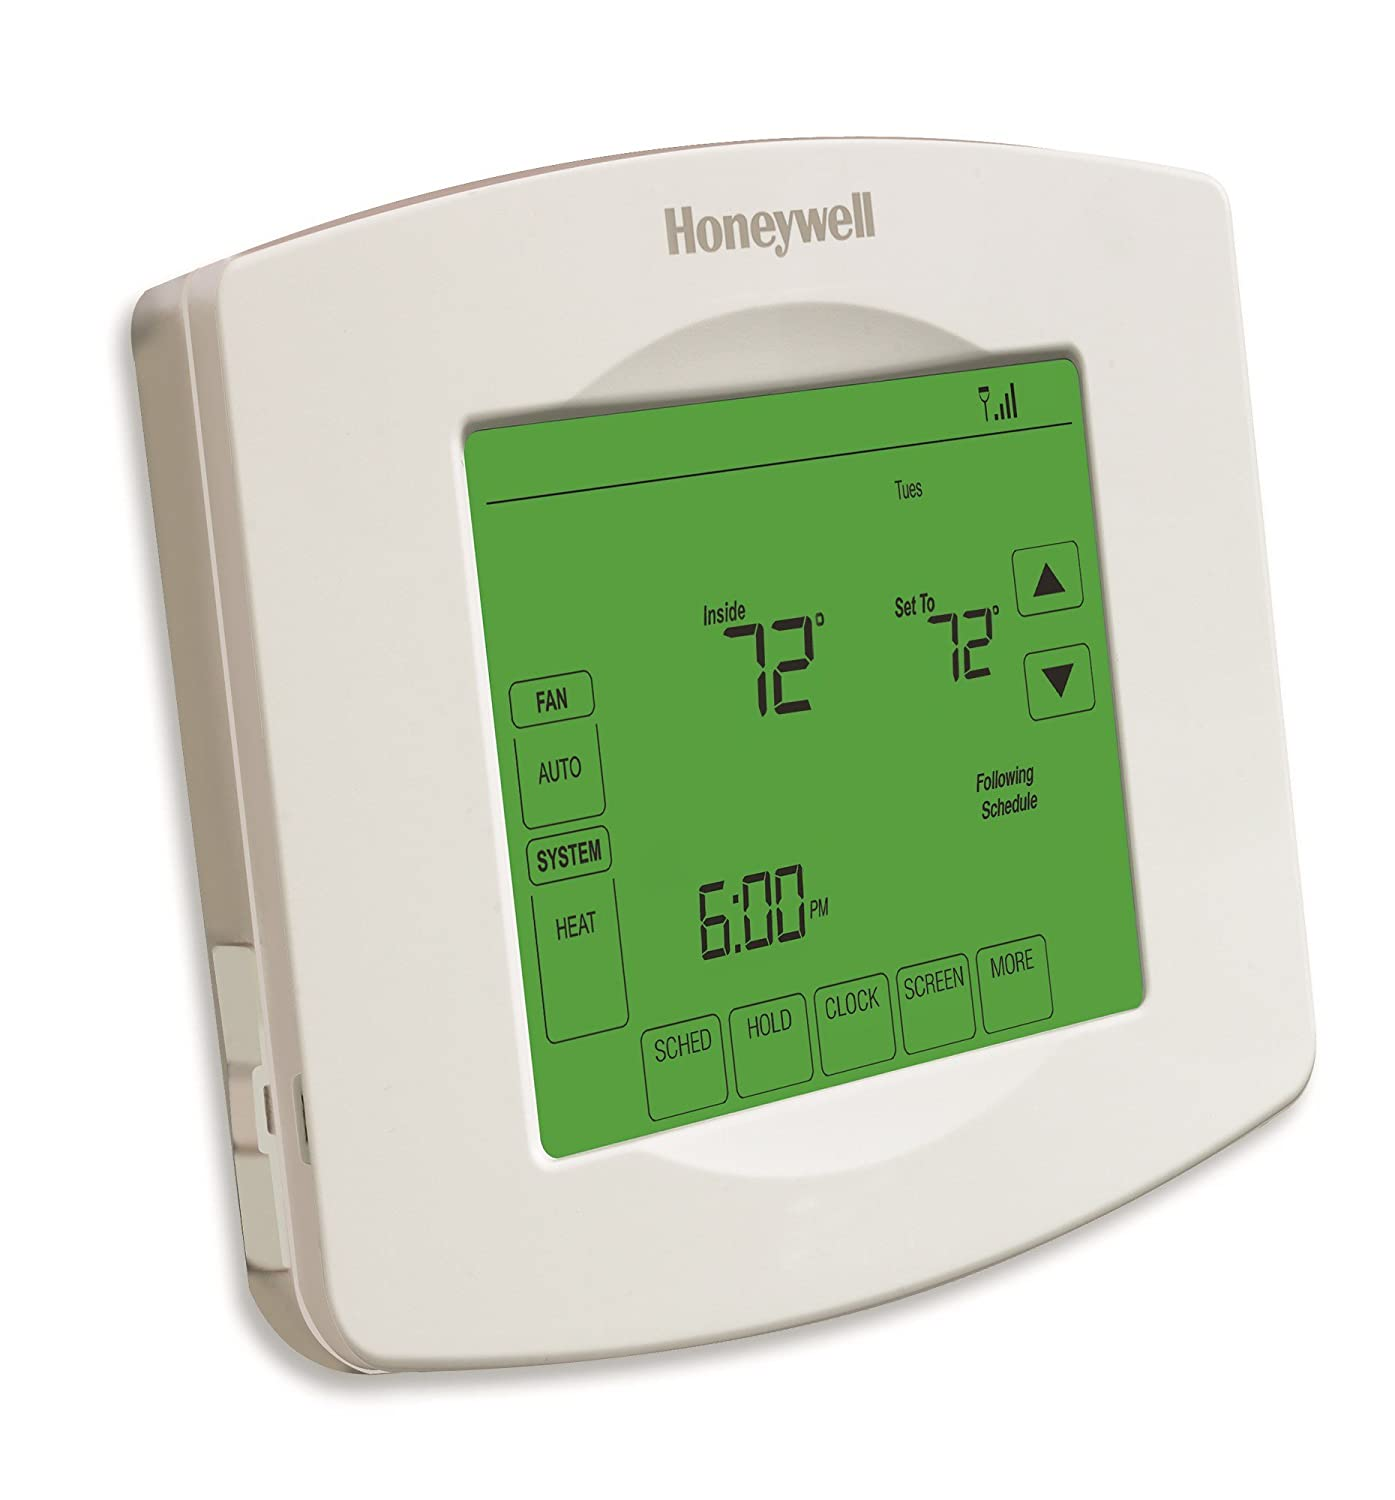 Honeywell RTH8580WF 7 Day Wi-Fi Programmable Touchscreen Thermostat, White  - Programmable Household Thermostats - Amazon.com